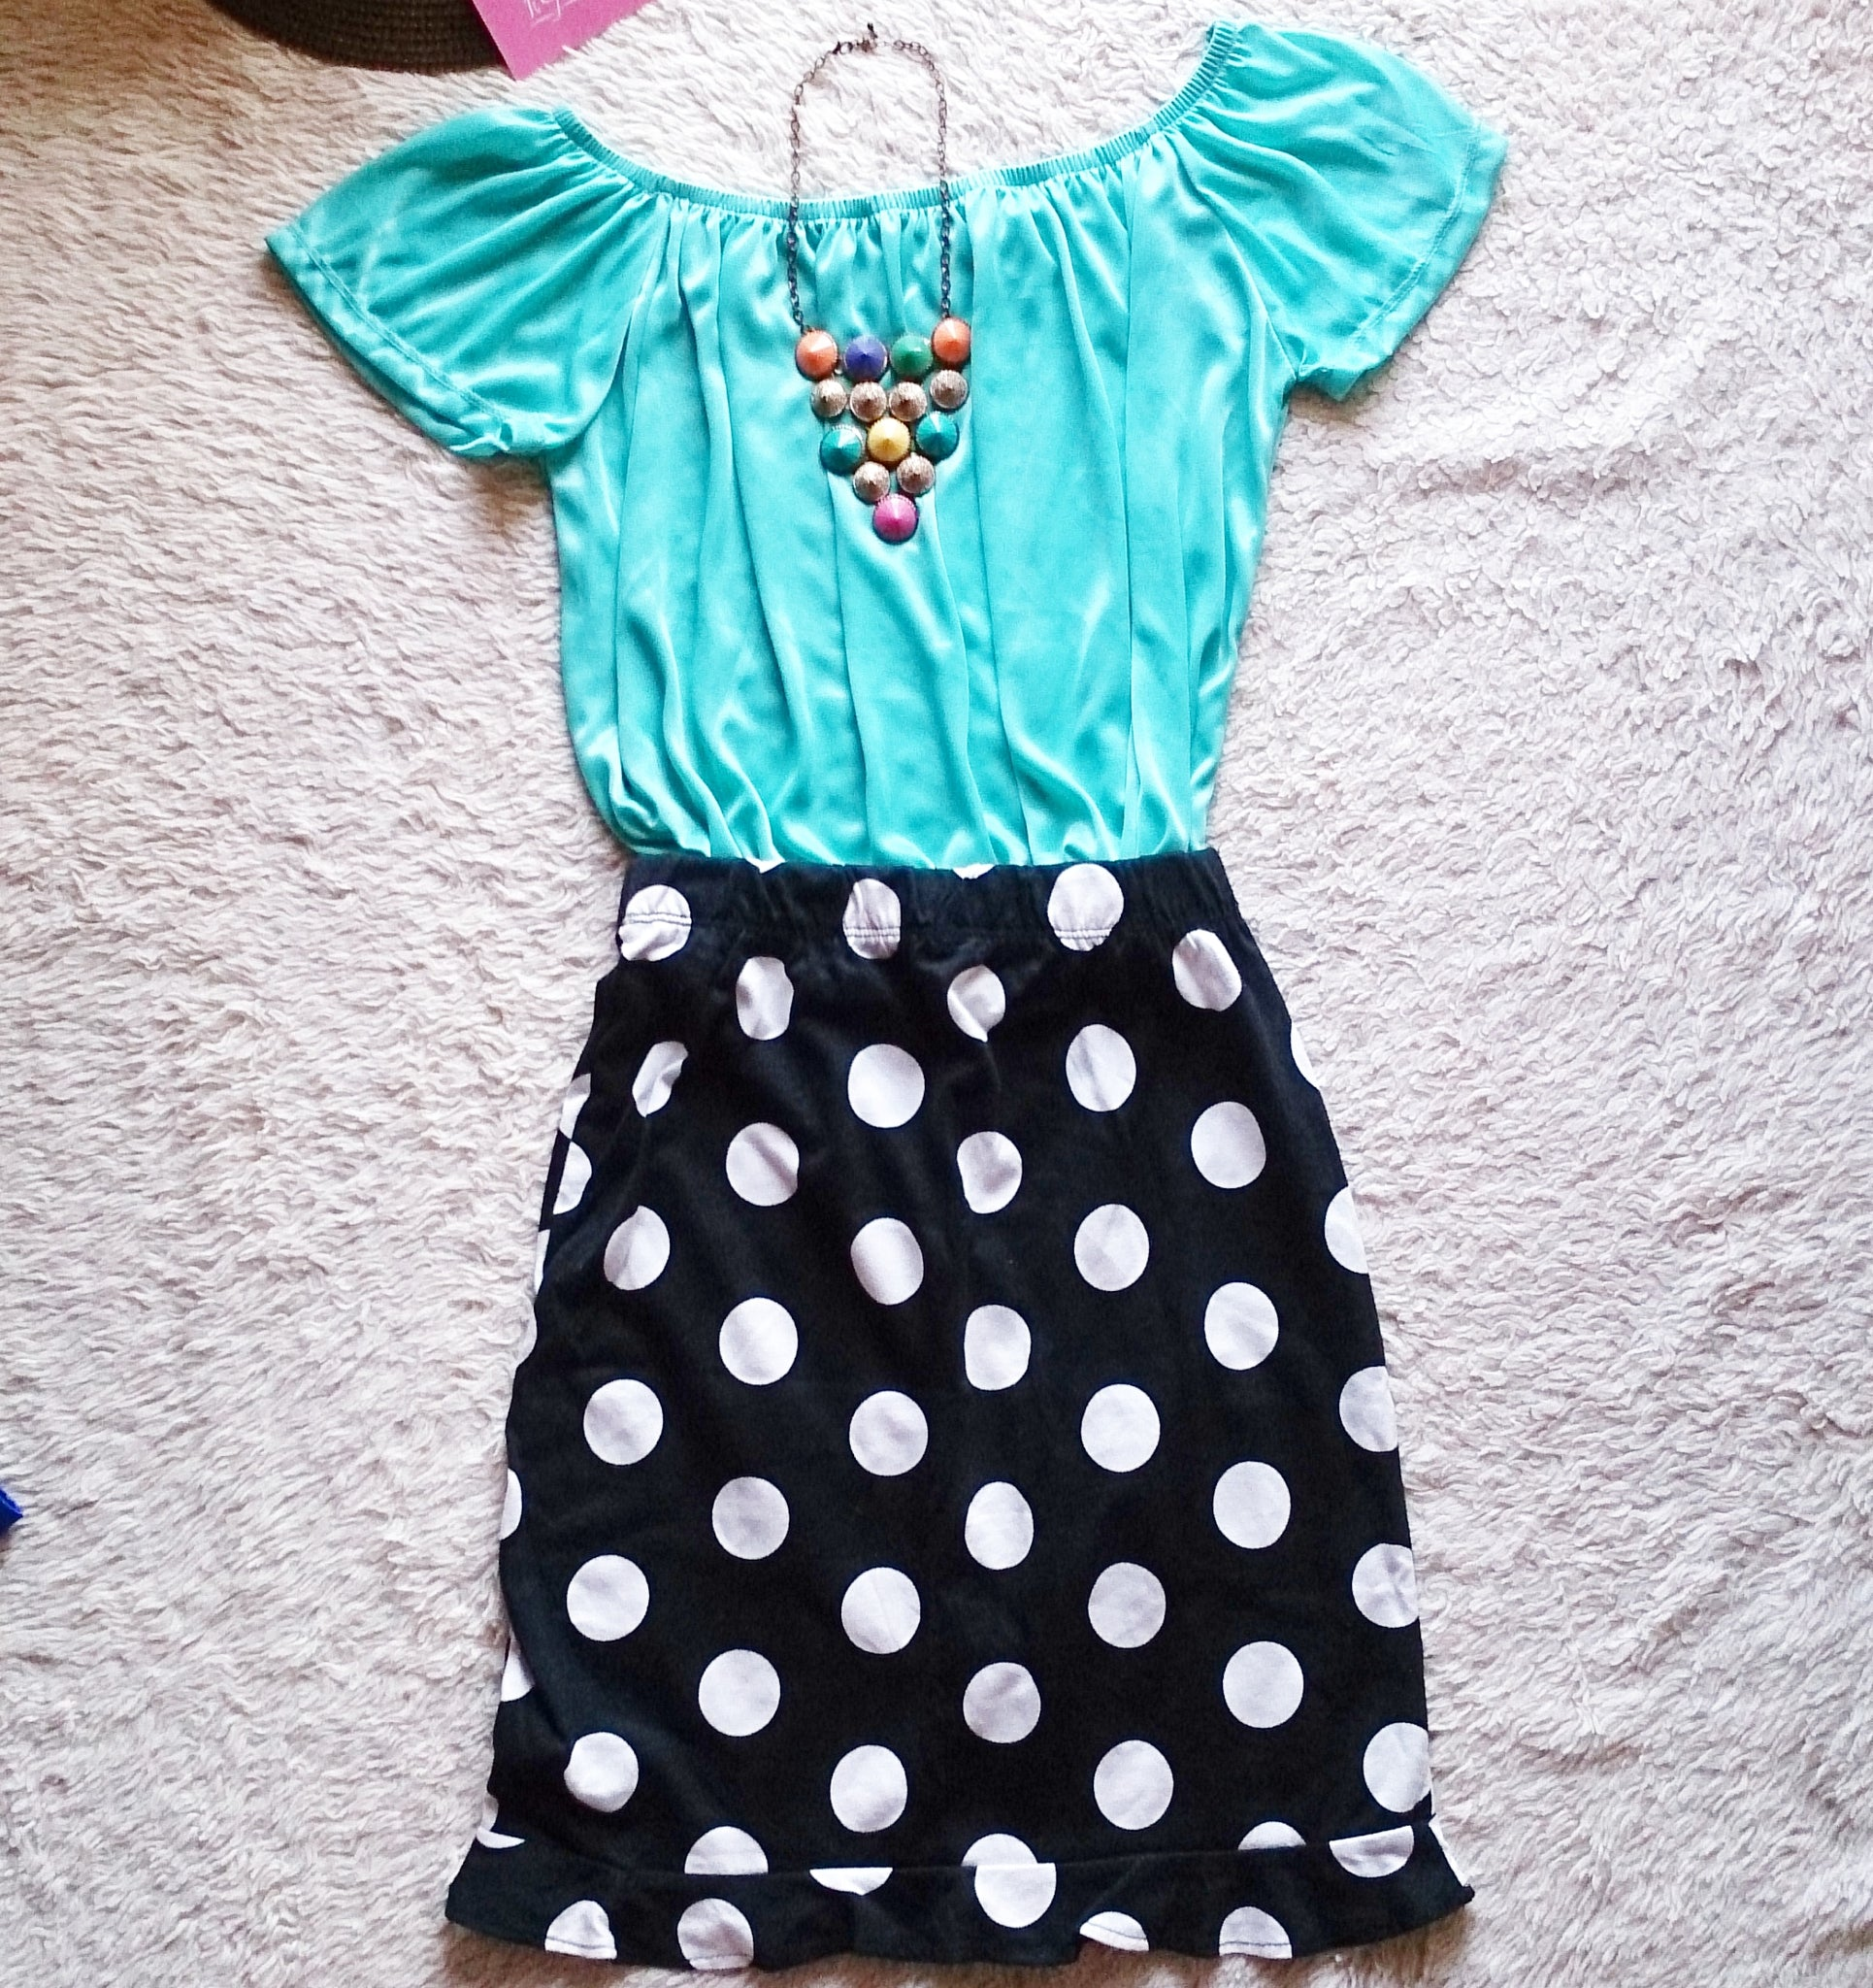 Polka ruffled pencil skirt